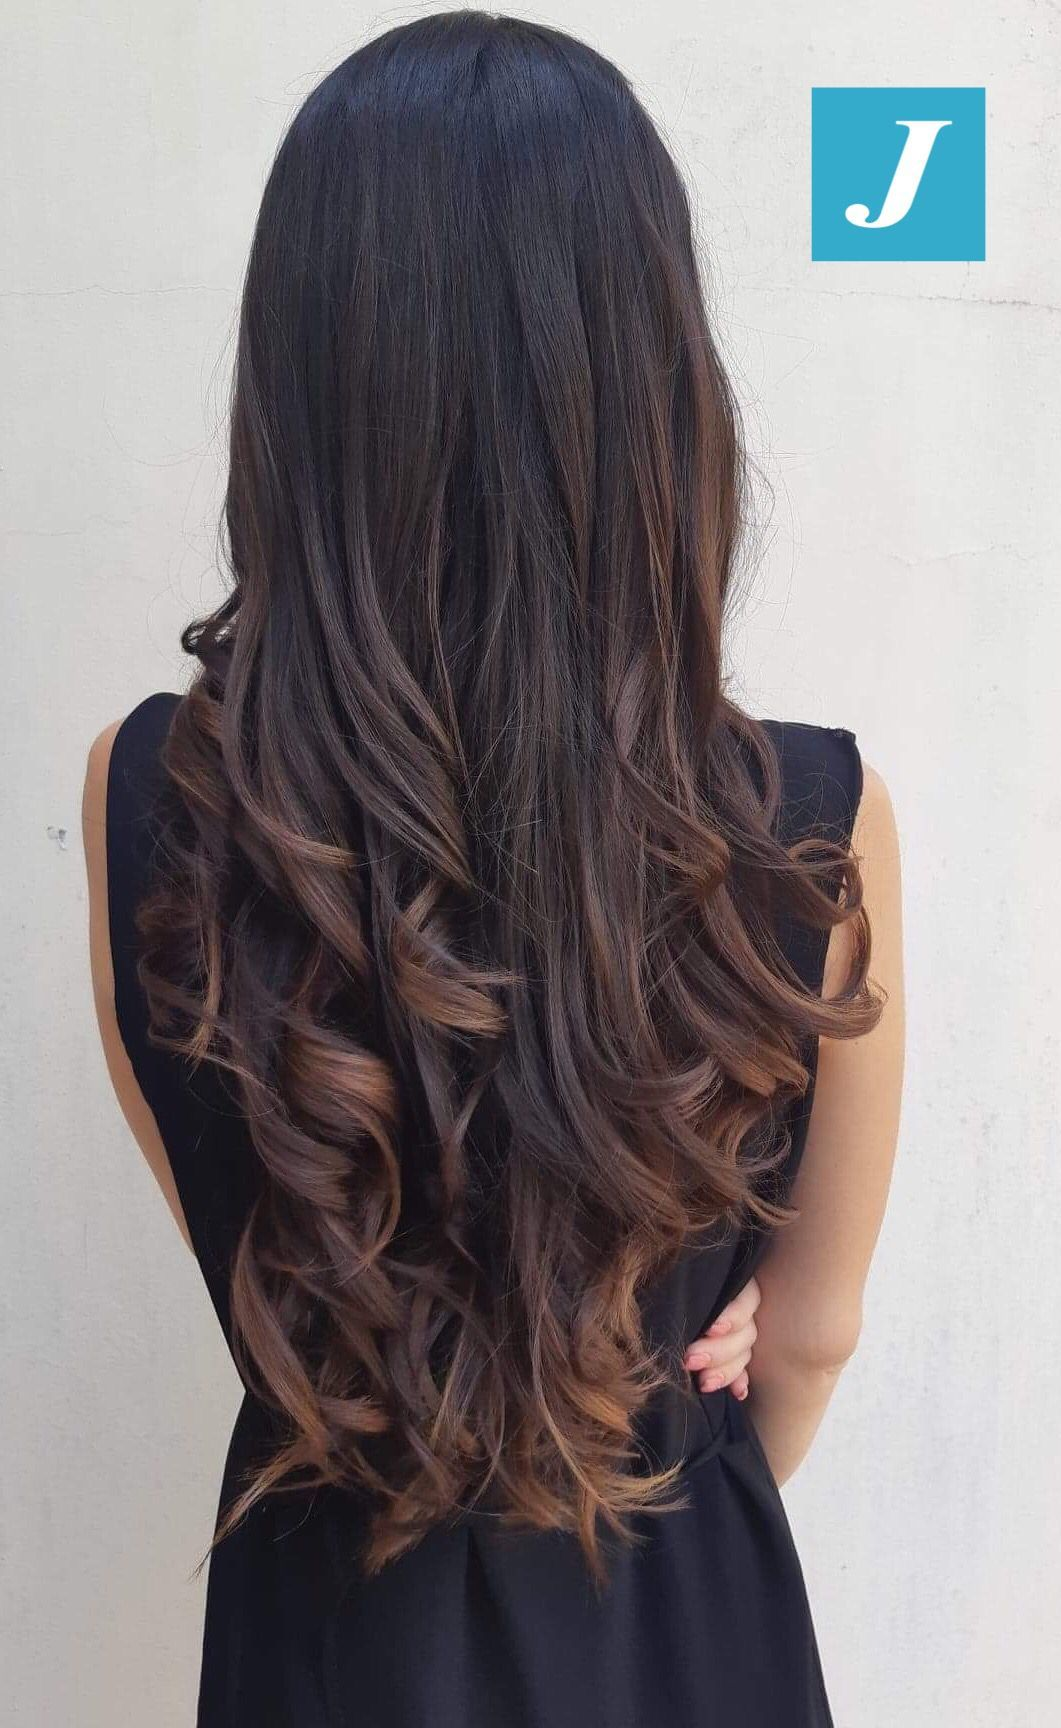 Pin By Amnie R Camos On El Cabello Hair Styles Long Hair Color Hair Color For Black Hair